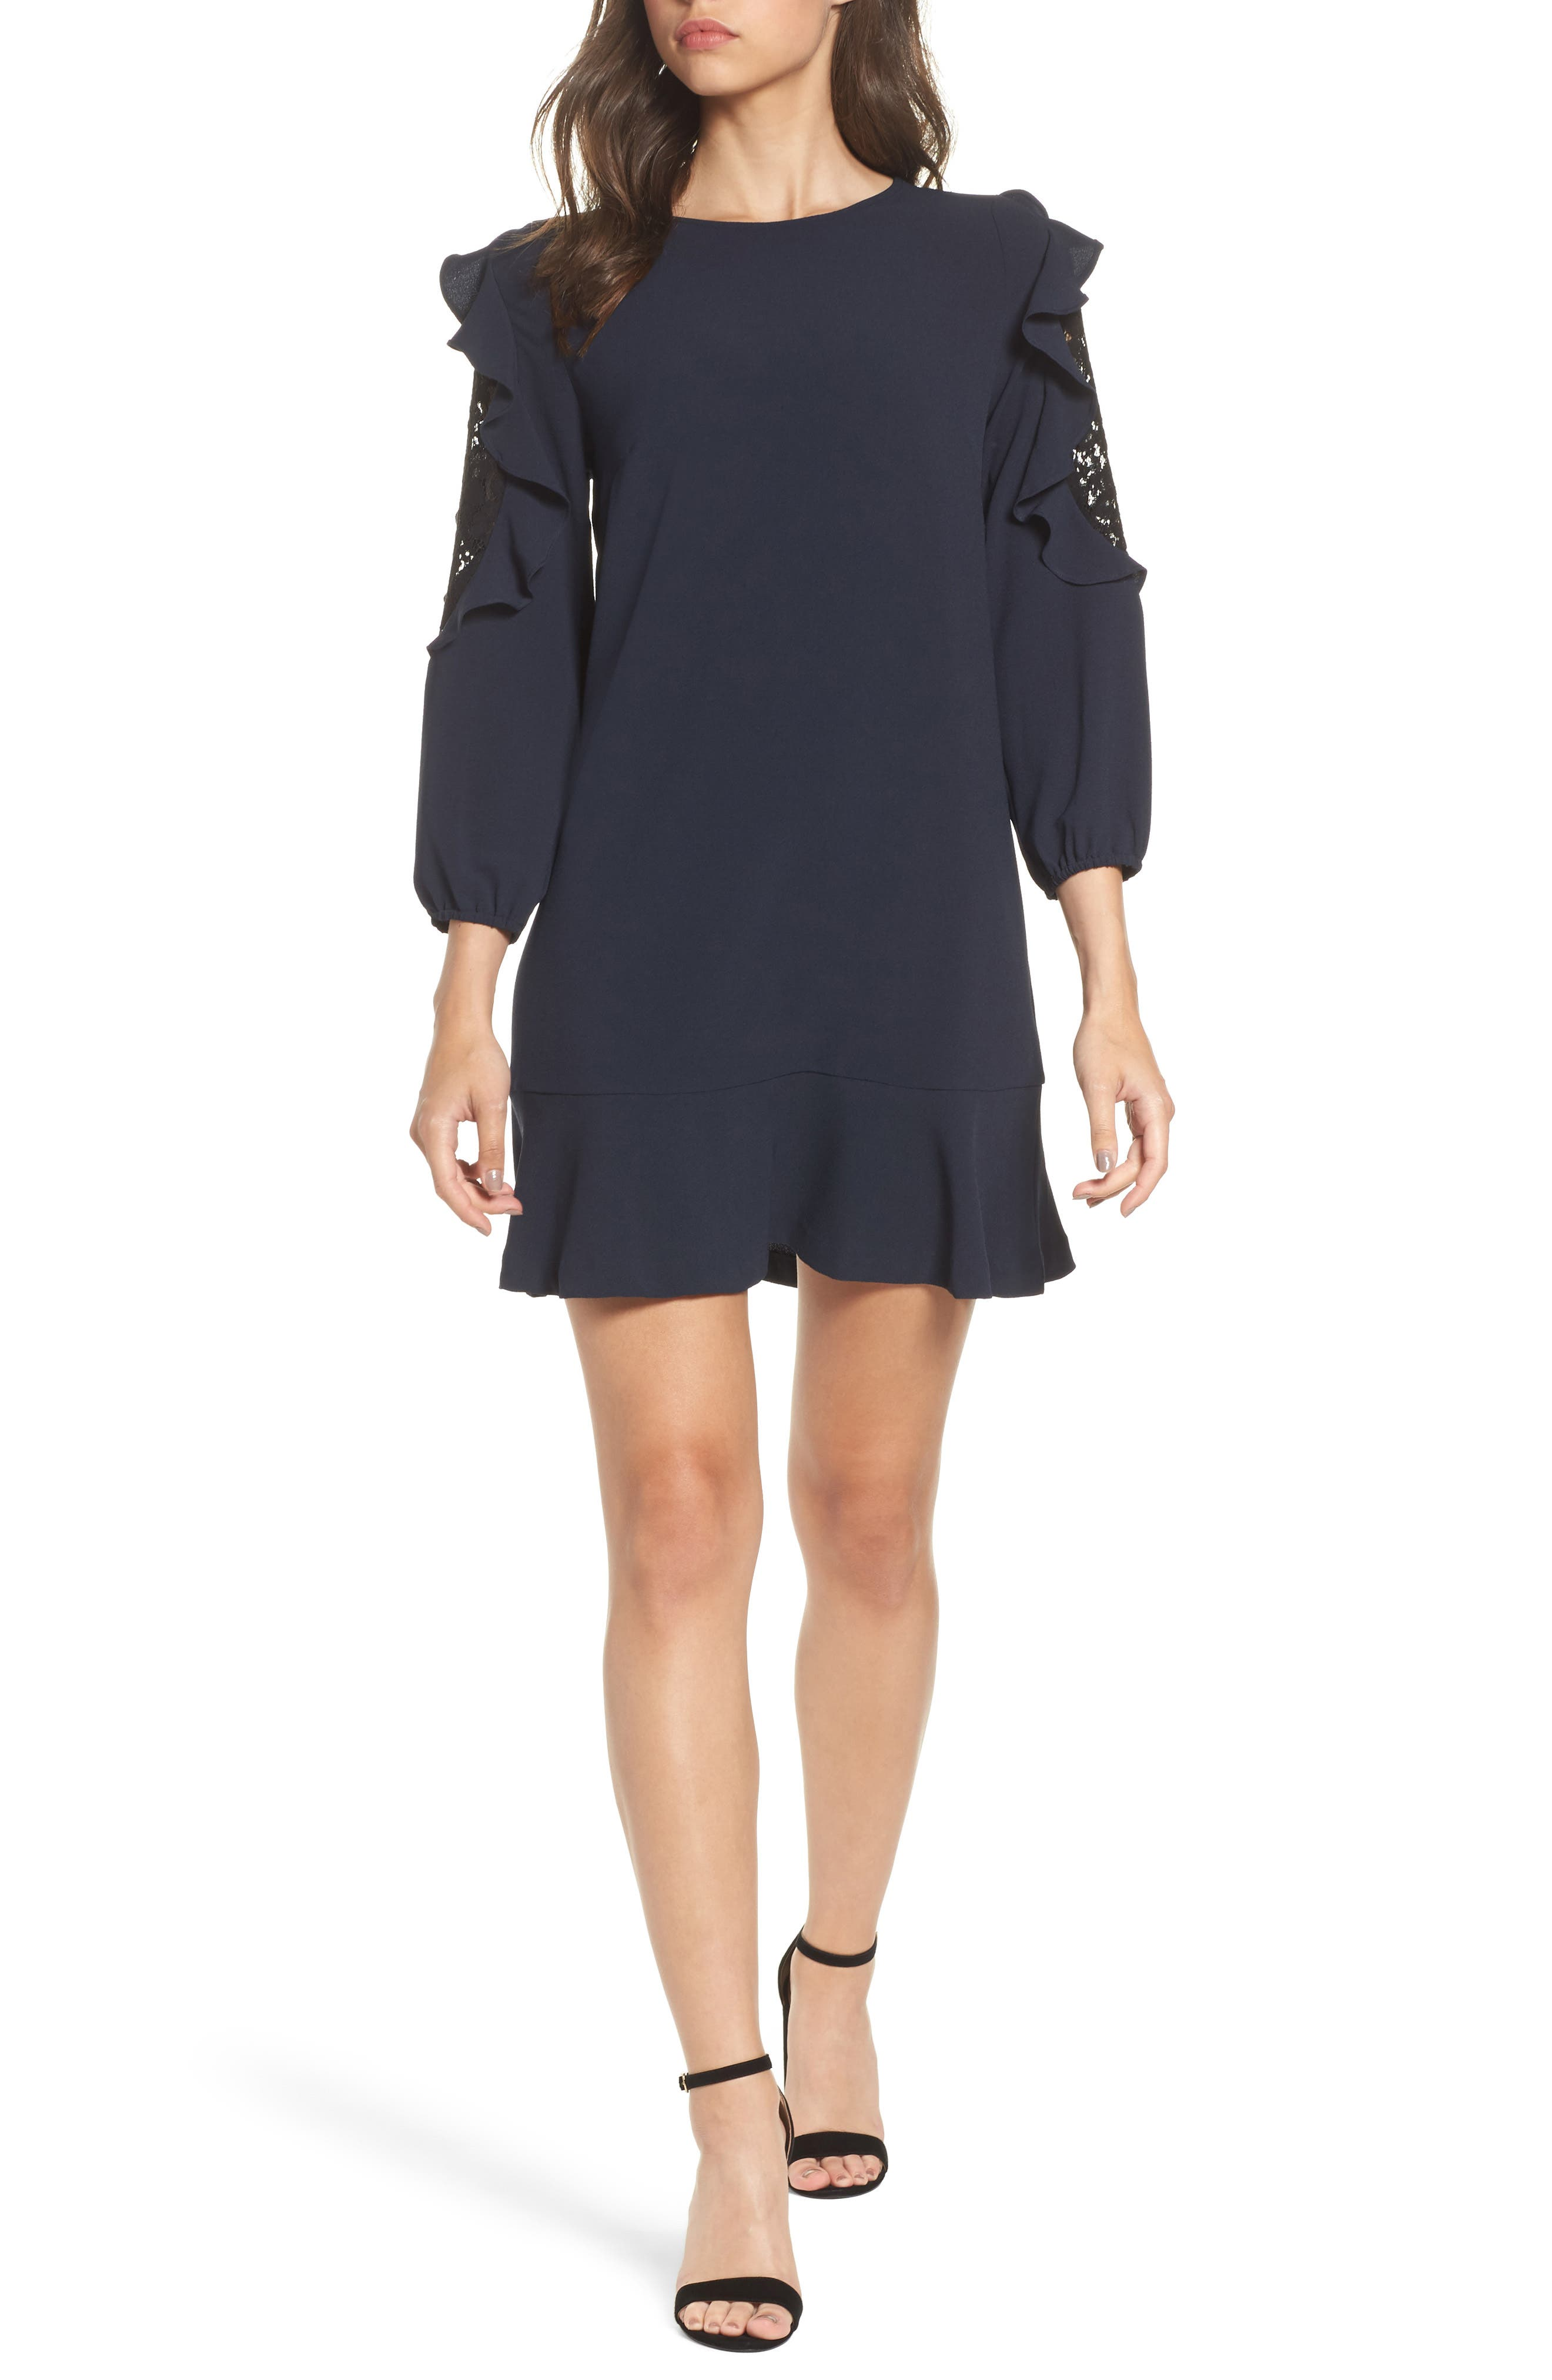 Felicity & Coco Ruffle Lace Dress (Nordstrom Exclusive)